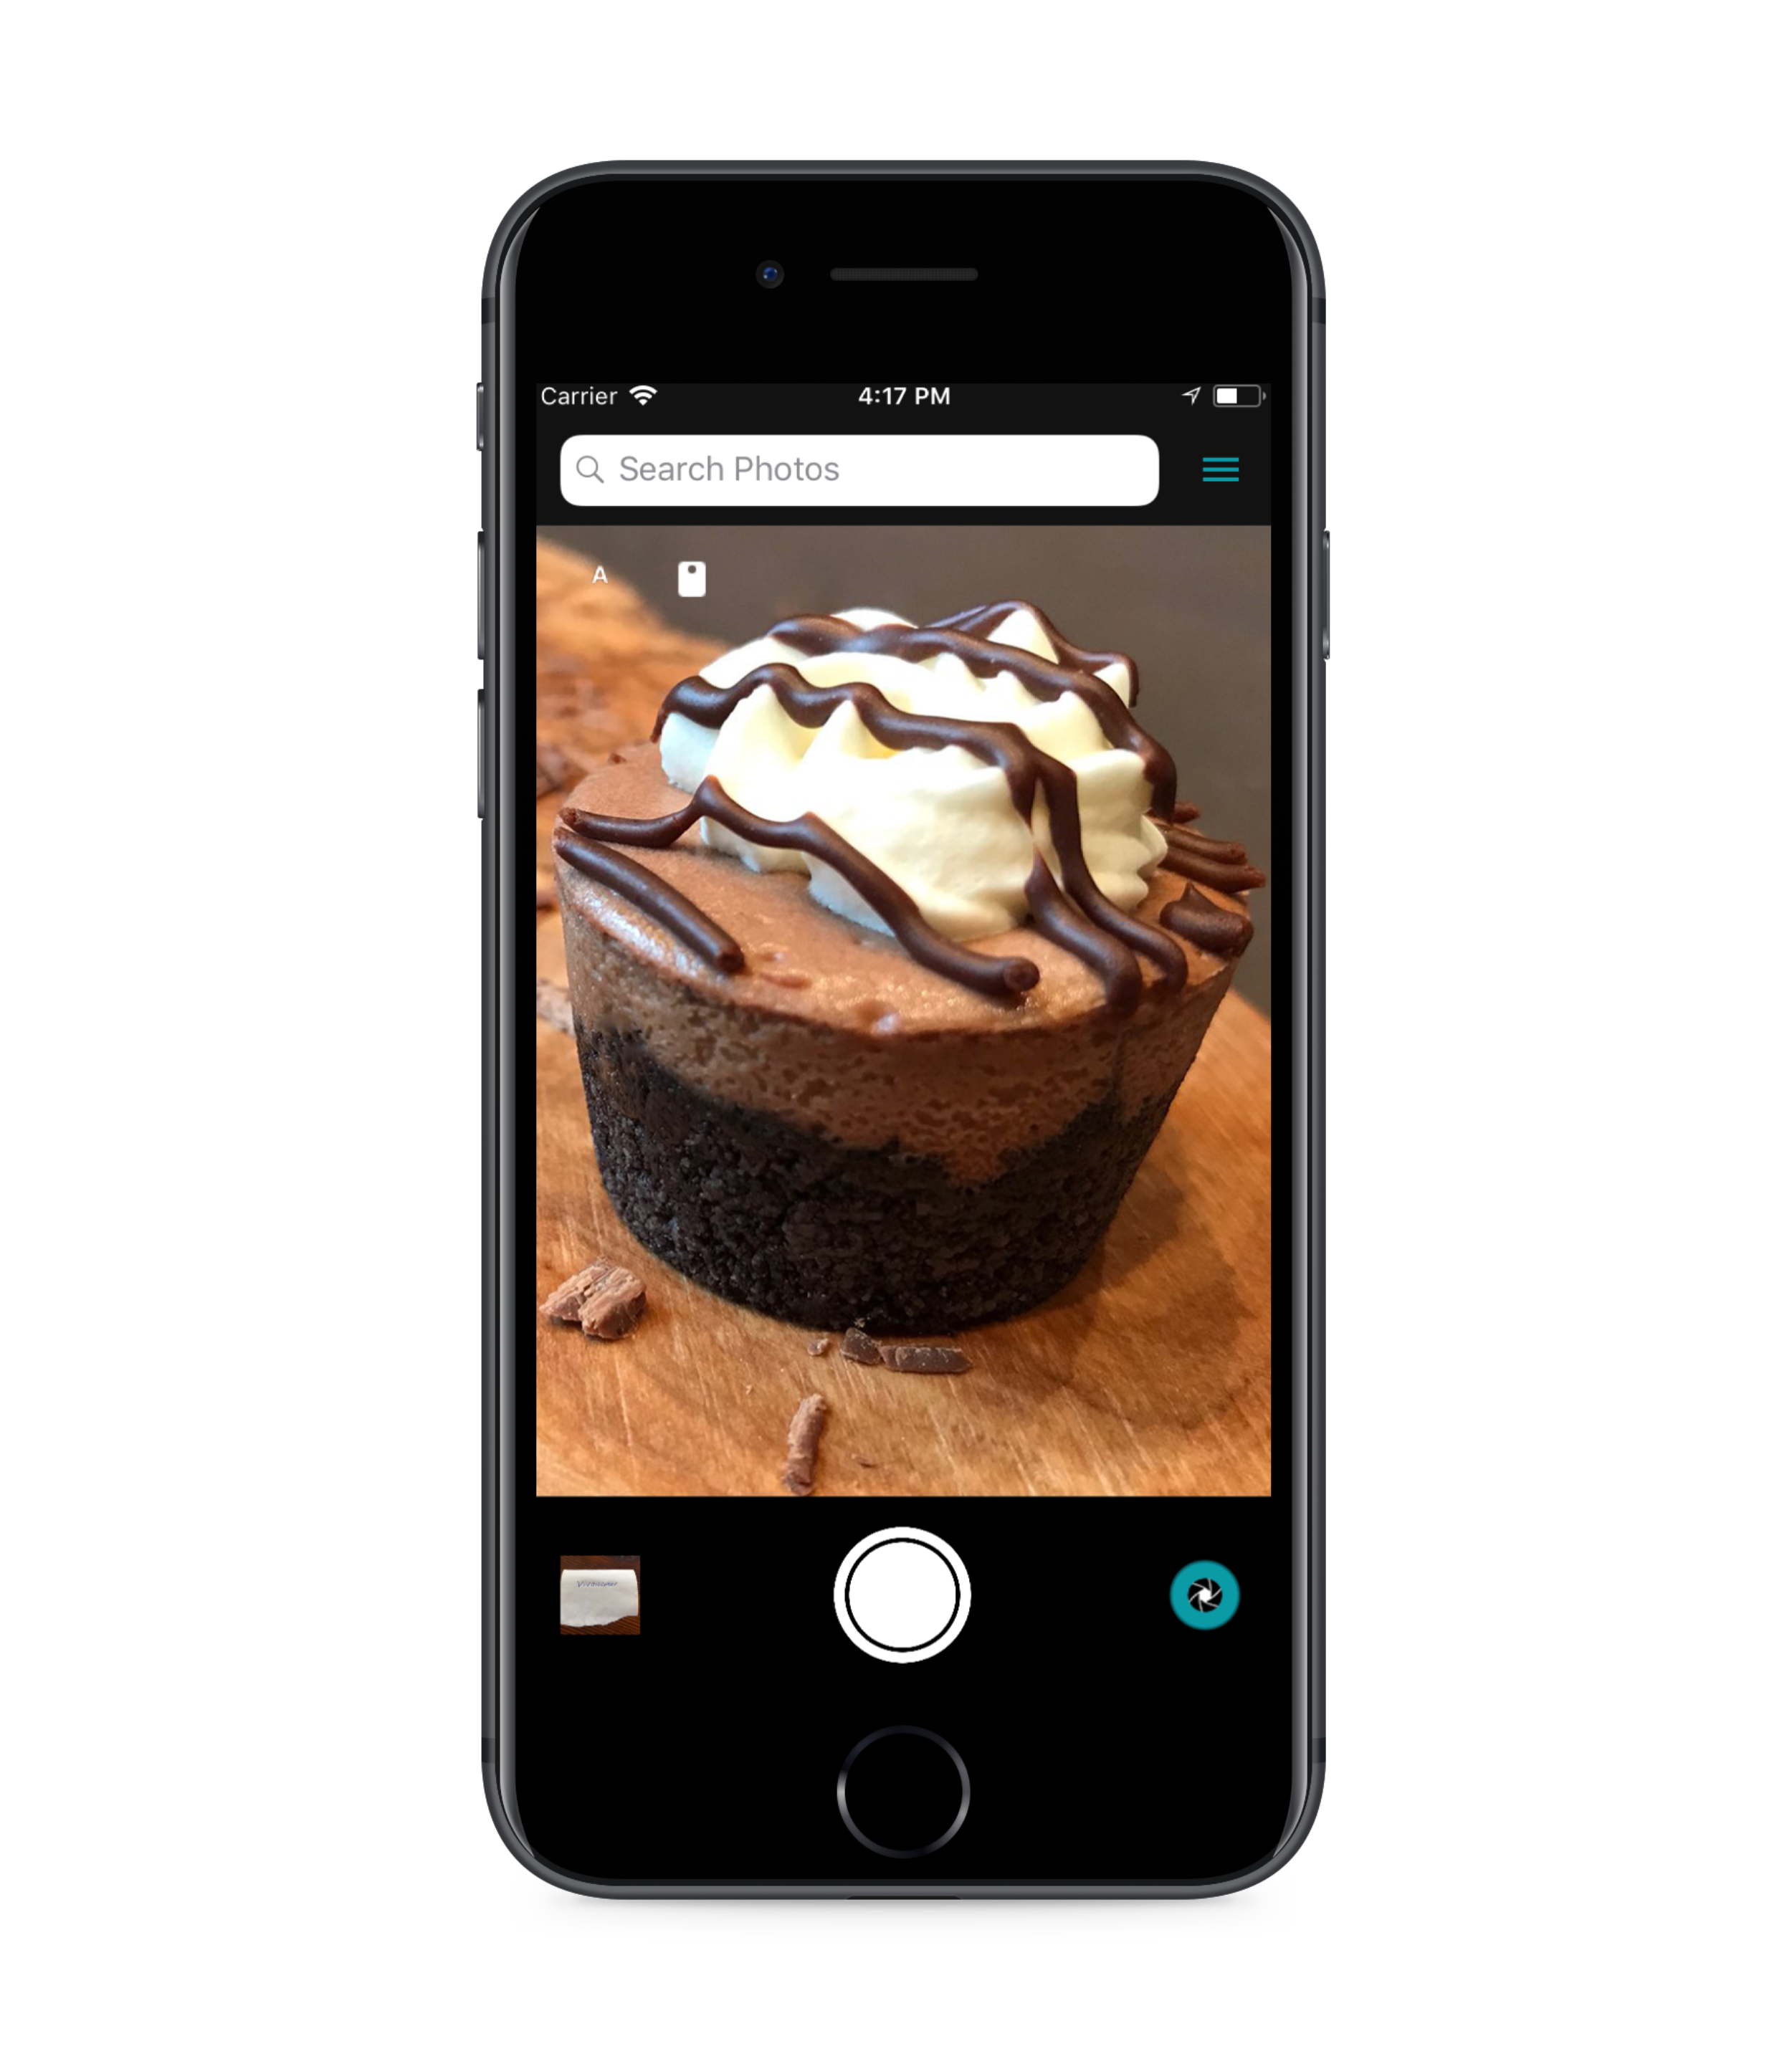 Meet Retana - Retana is a camera app and virtual assistant built in one. It has a simple, intuitive interface and maintains its own cloud-backed camera roll, separate from your photo memories.